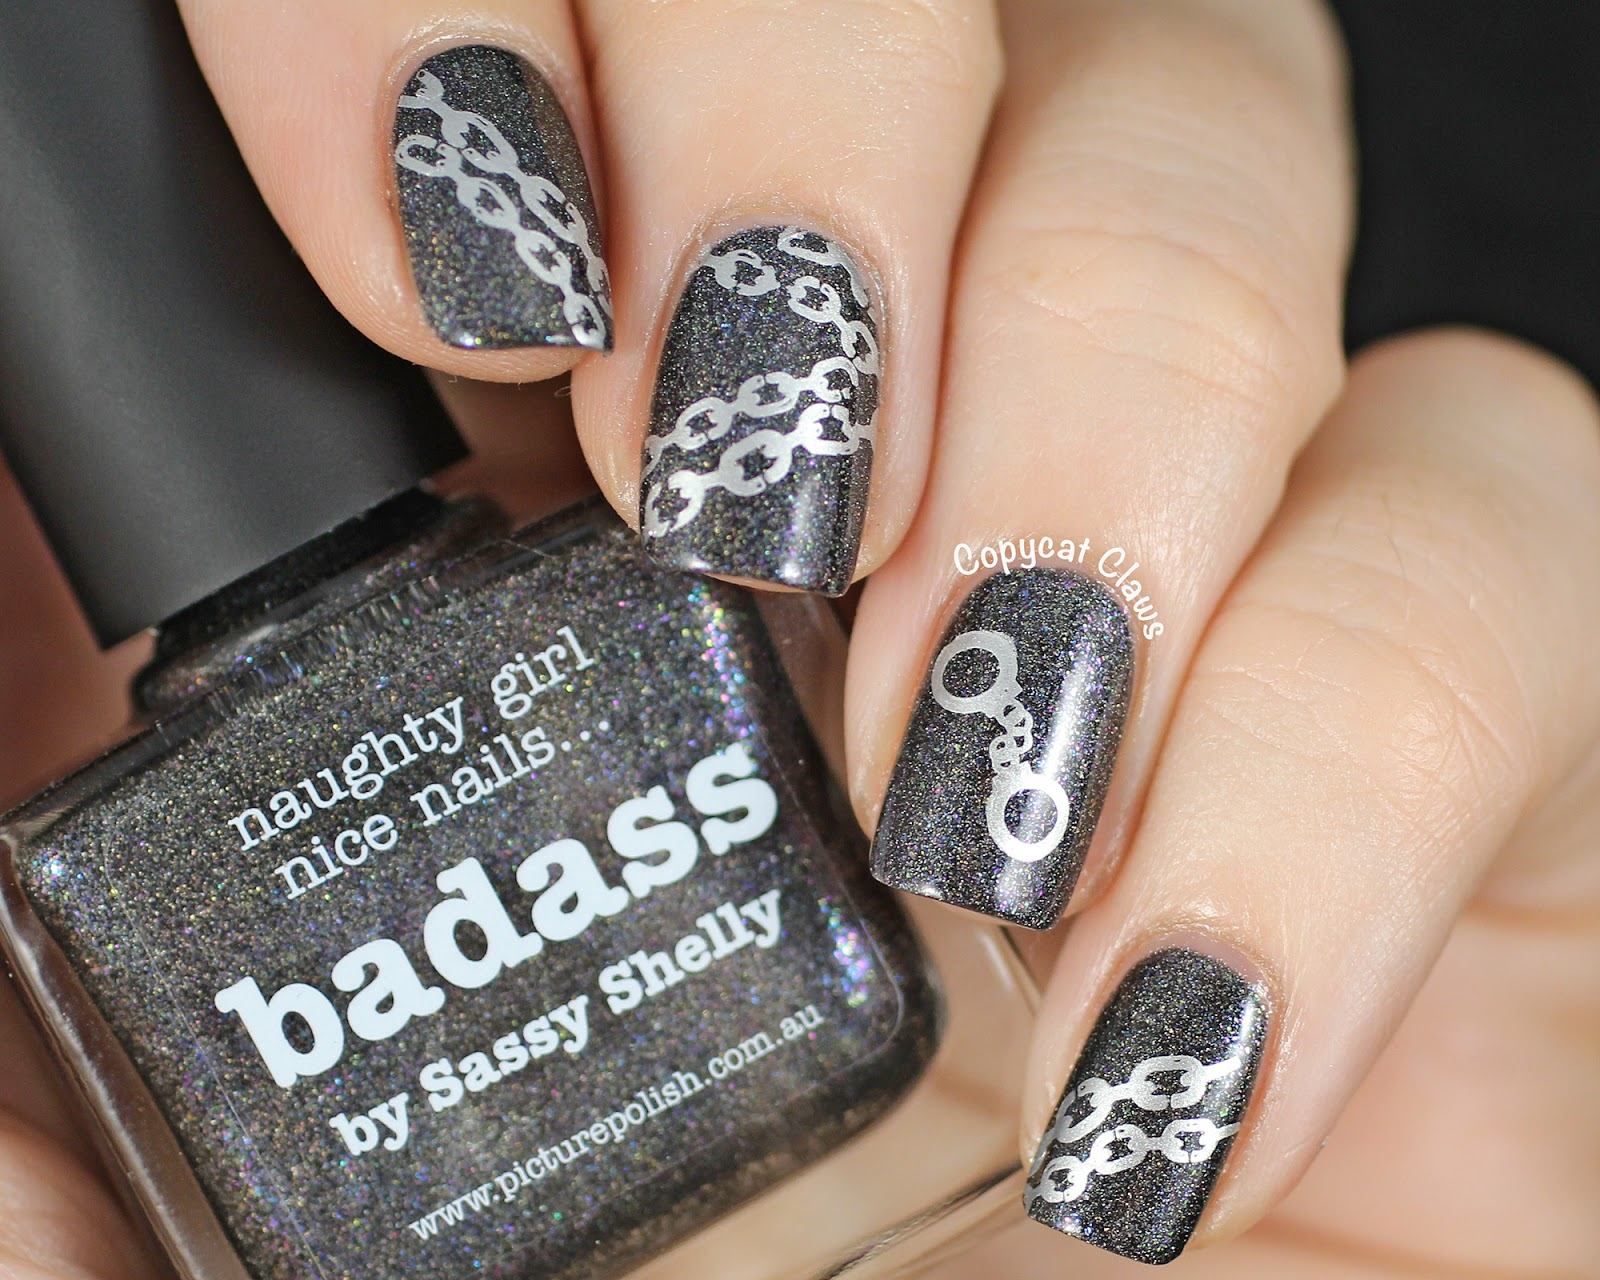 Copycat Claws Sunday Stamping Picture Polish Badass